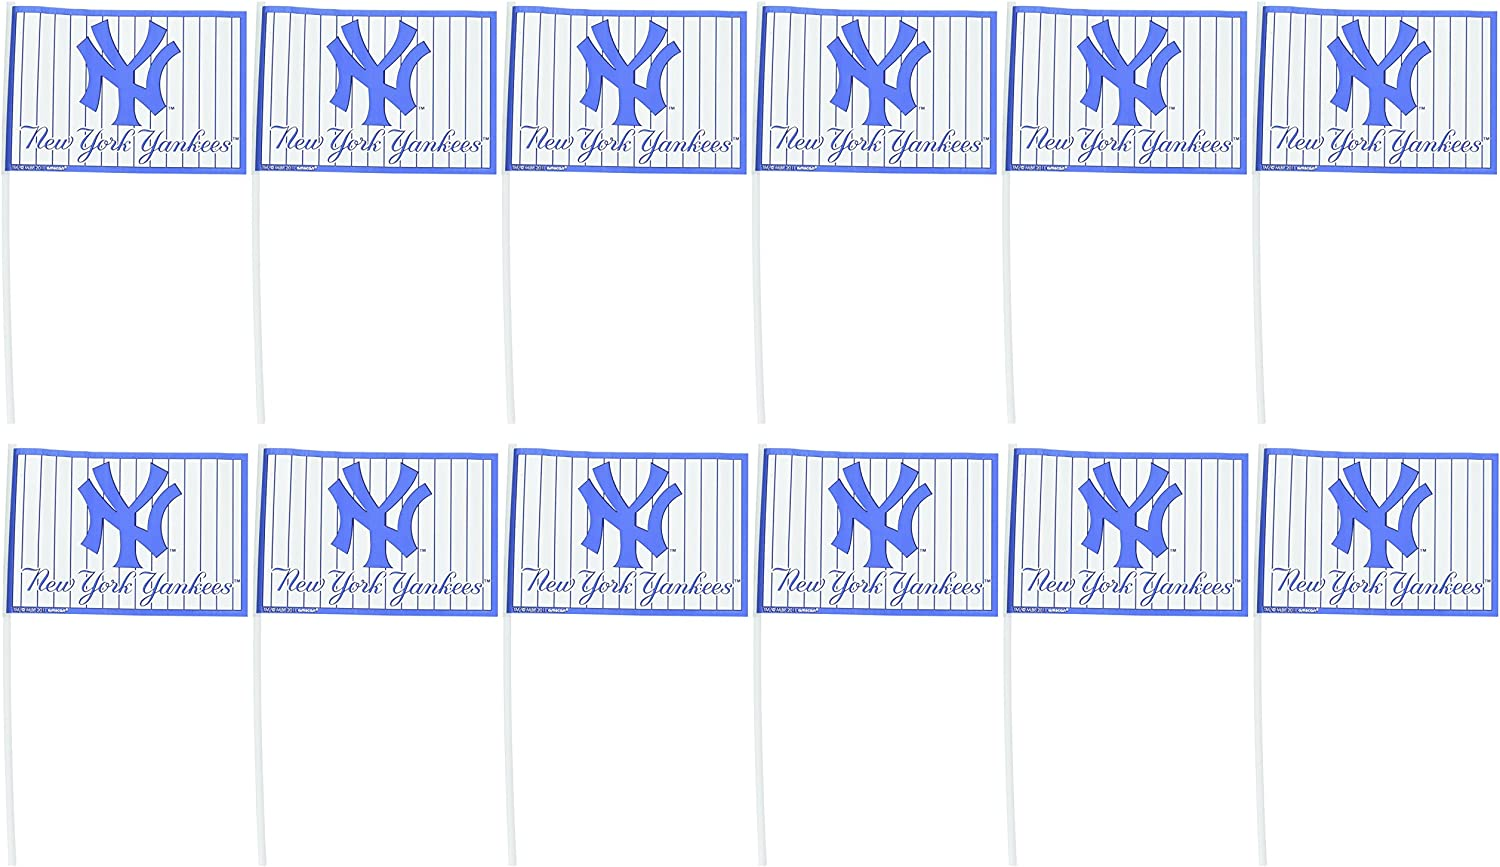 Amscan 394872 New York Yankees Major League Baseball Collection Plastic Flags 625 x 4 12 Pcs